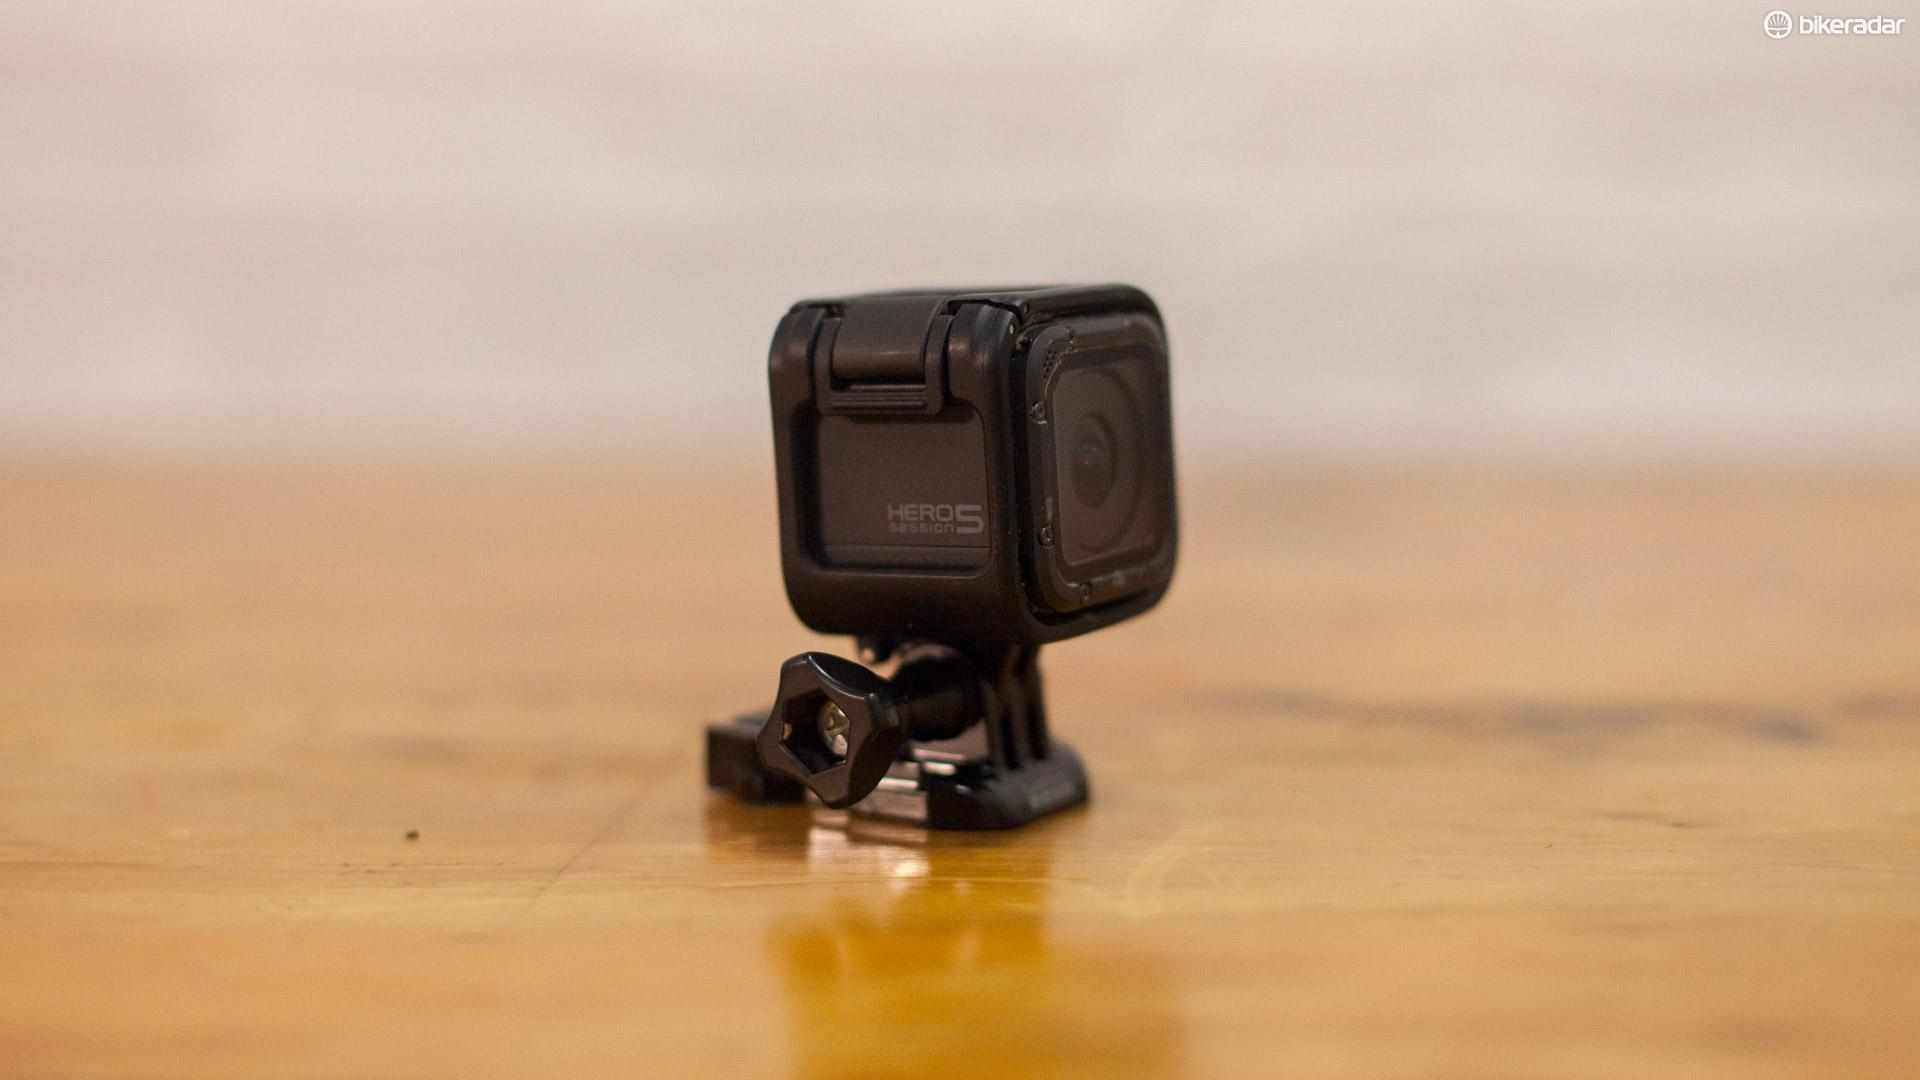 The GoPro Hero 5 Session delivers excellent image quality in a tiny package